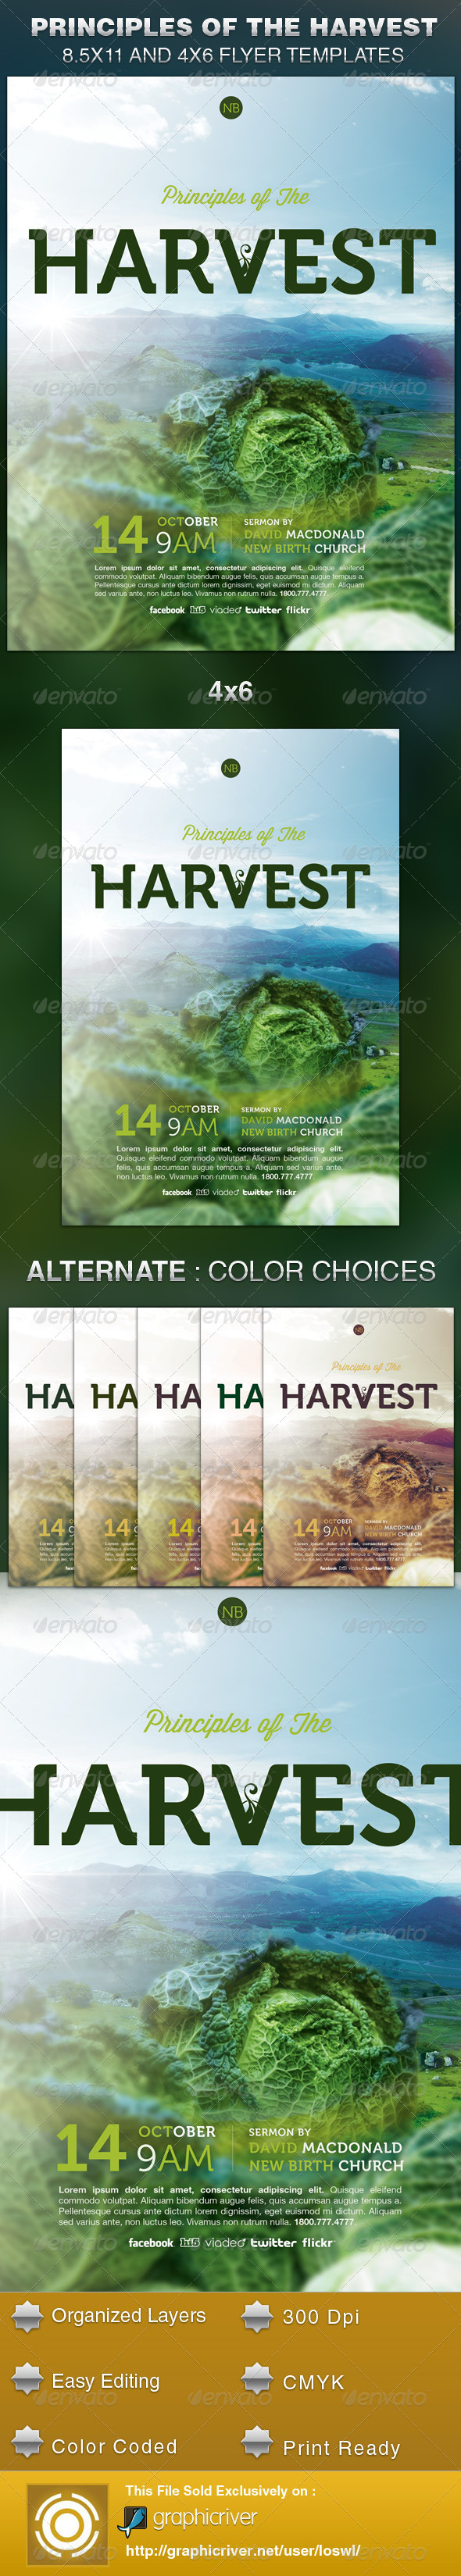 GraphicRiver Principles of the Harvest Church Flyer Template 5979900